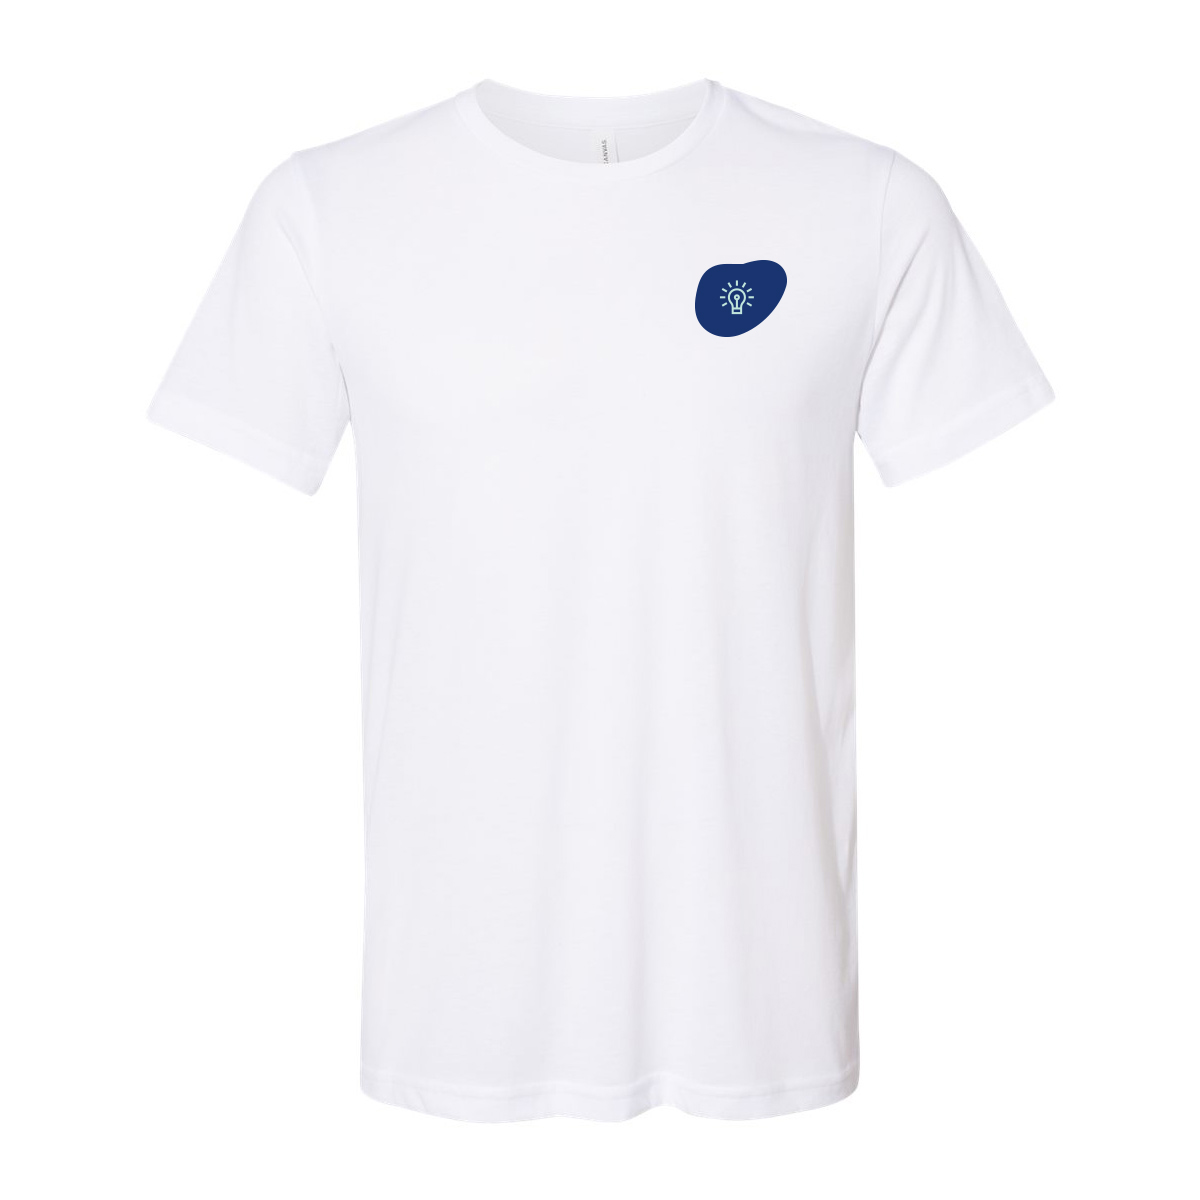 269643 unisex sueded tee two color one location imprint